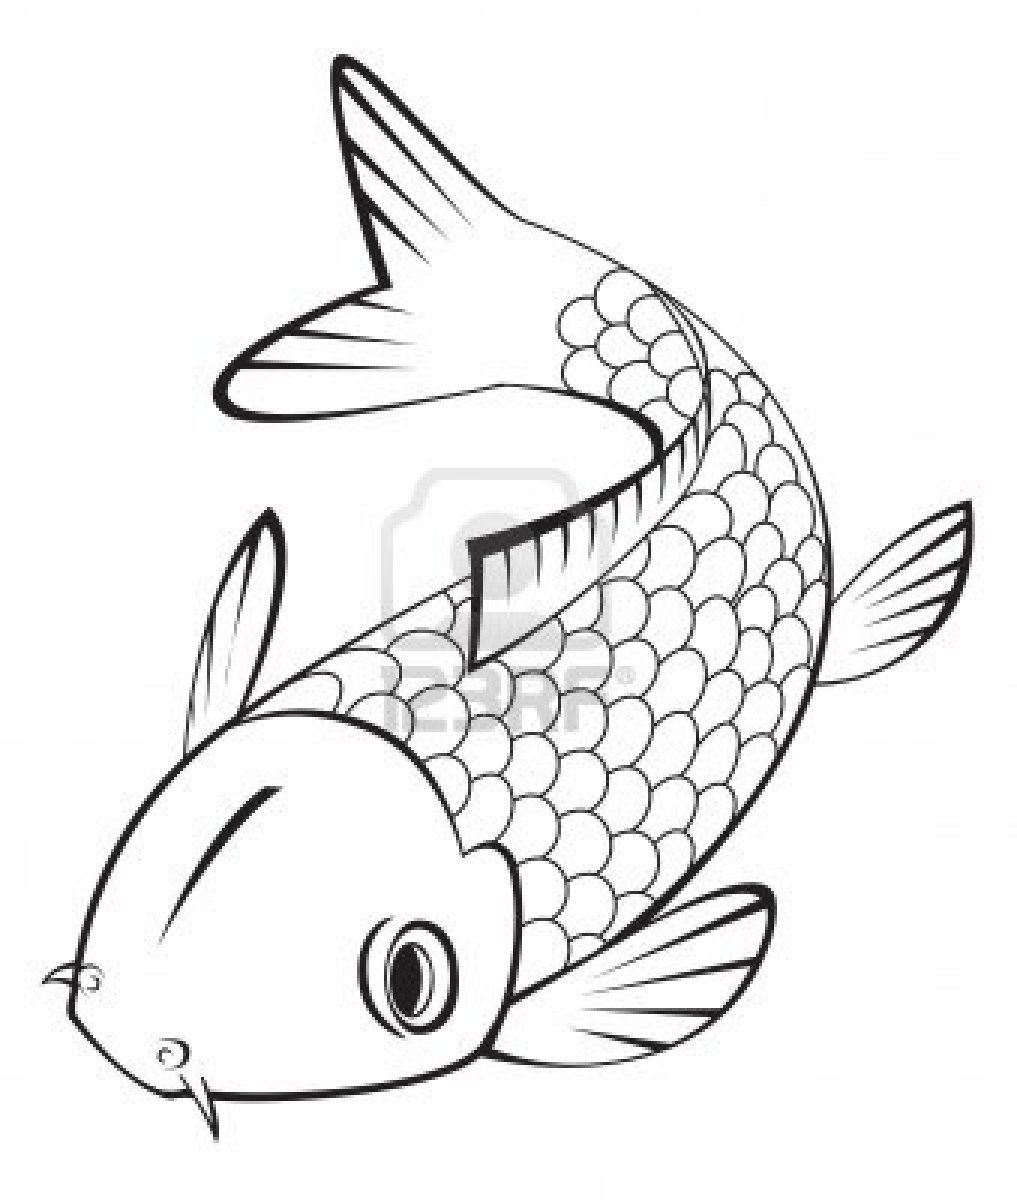 Download Koi Fish Coloring Pages | Koi & Water Lilies | Pinterest ...